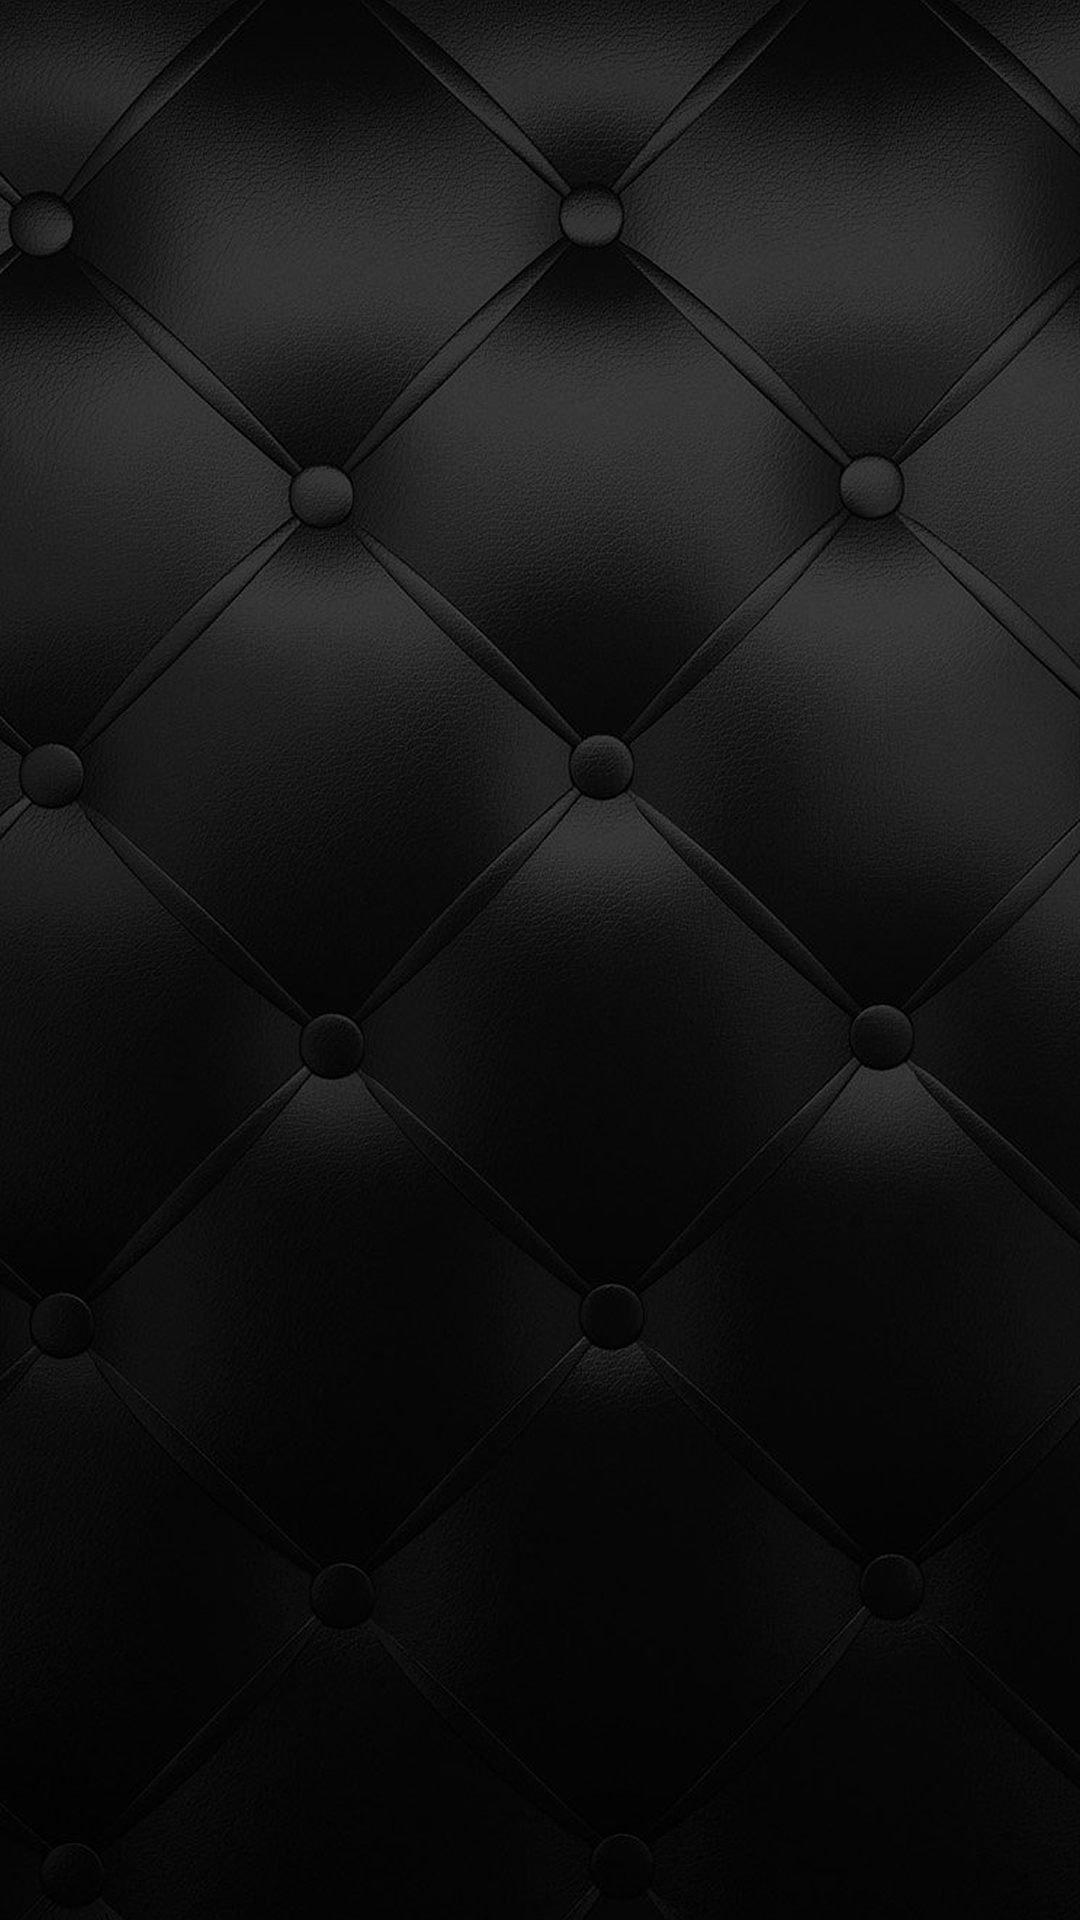 Black Texture Pattern iPhone 6 Wallpaper Download iPhone Wallpapers 1080x1920